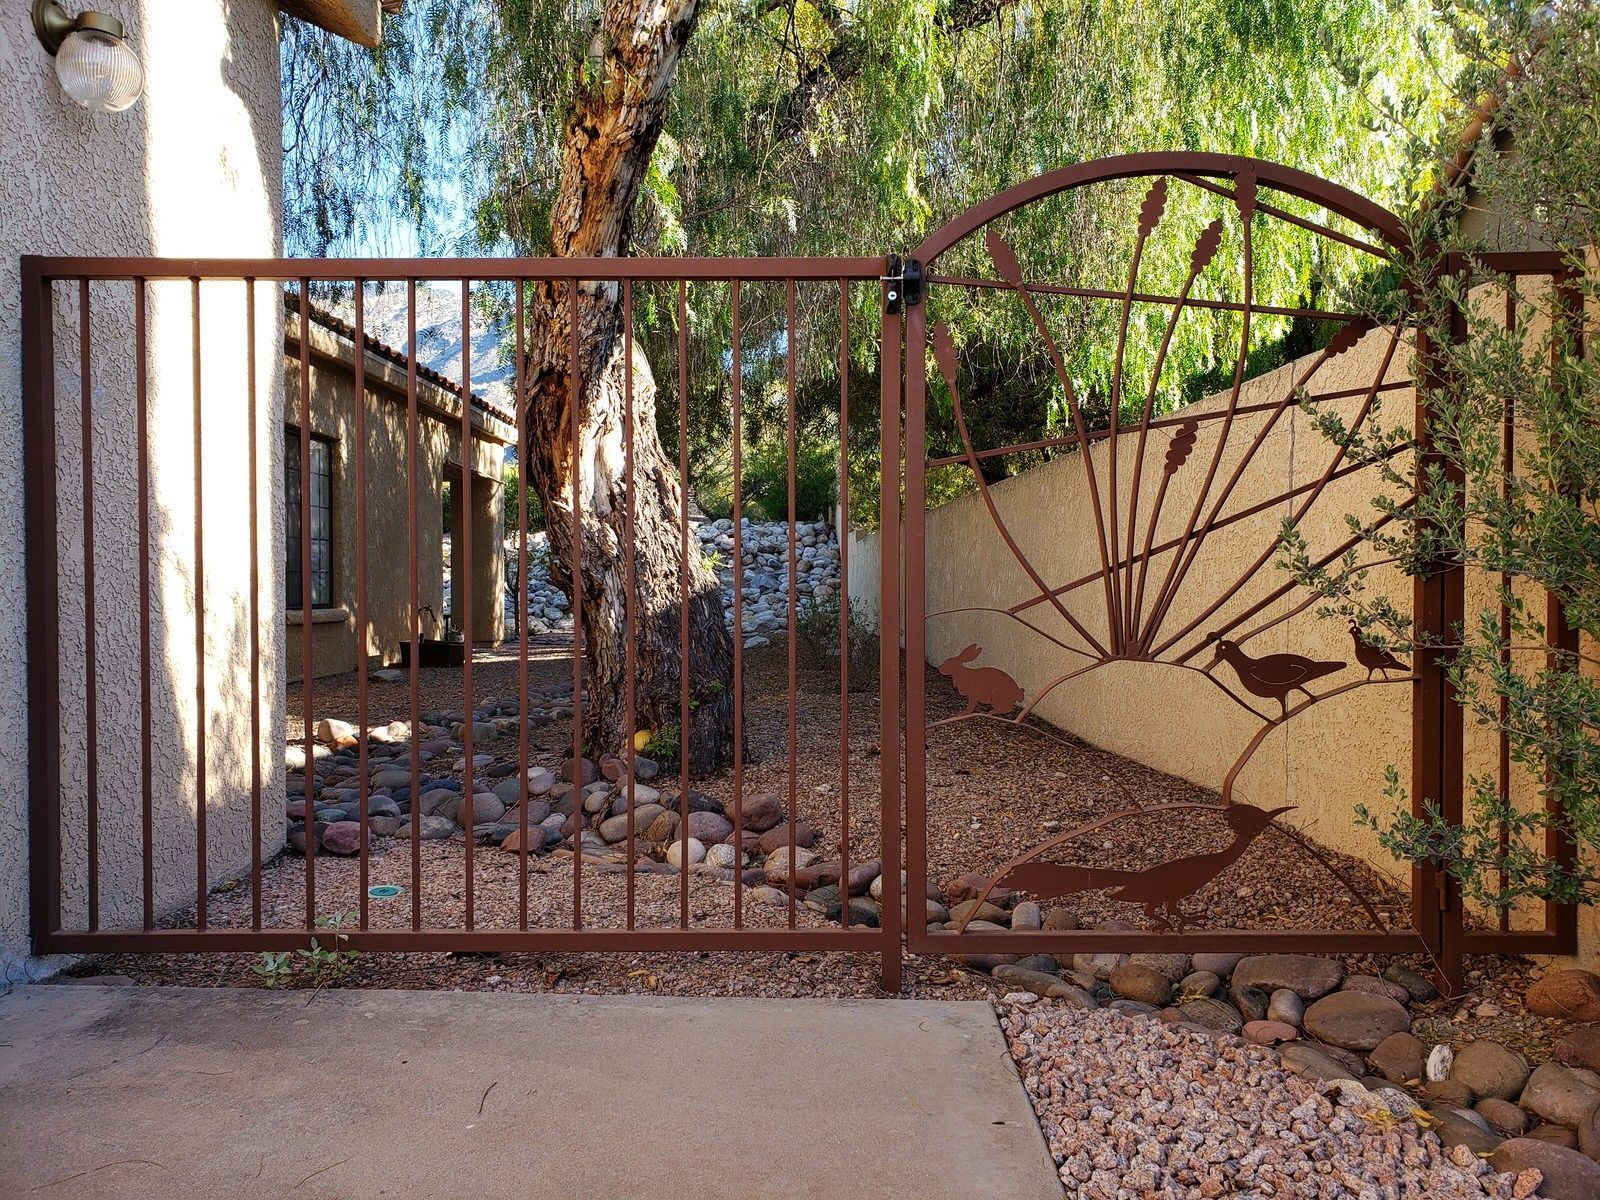 Wrought Iron Gate And Fence Tucson 20190424 073941 Wrought Iron